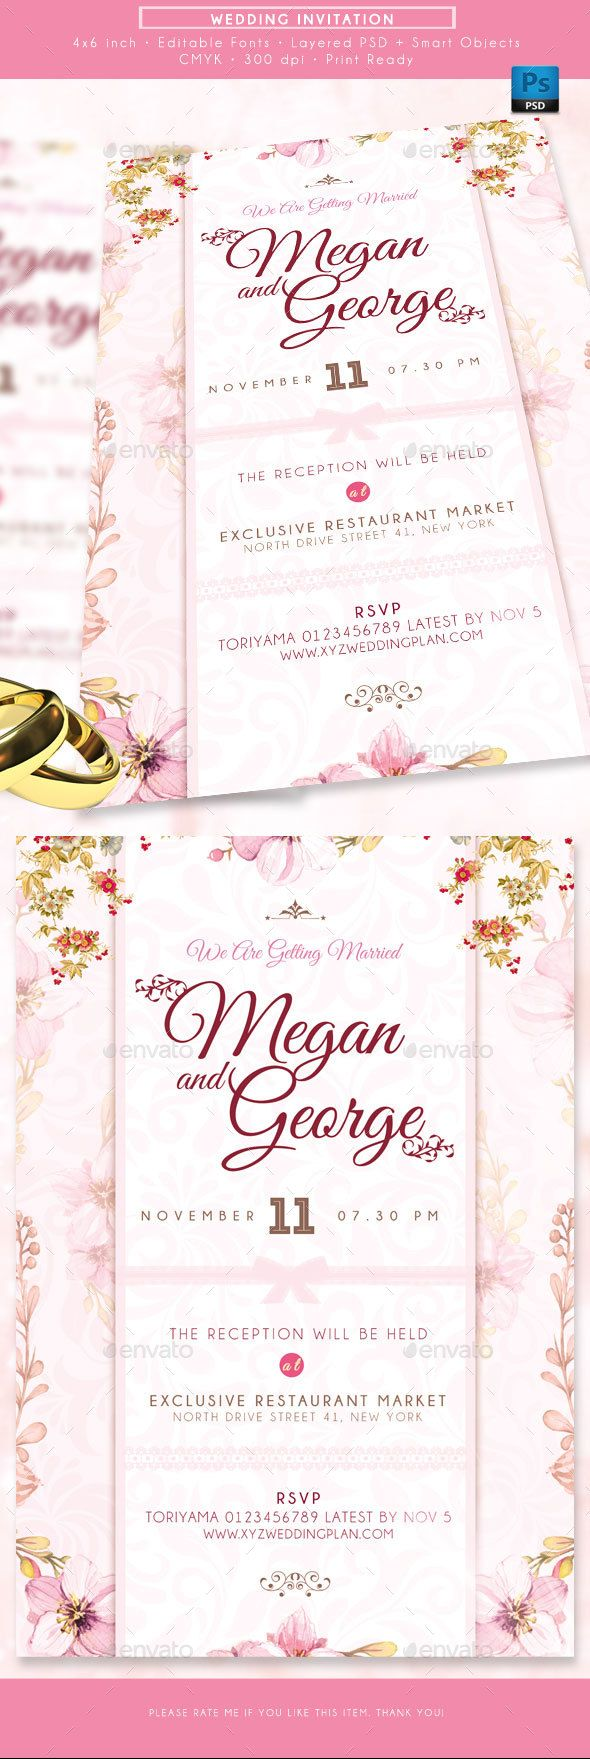 Wedding Invitations | Pinterest | Template, Font logo and Card templates